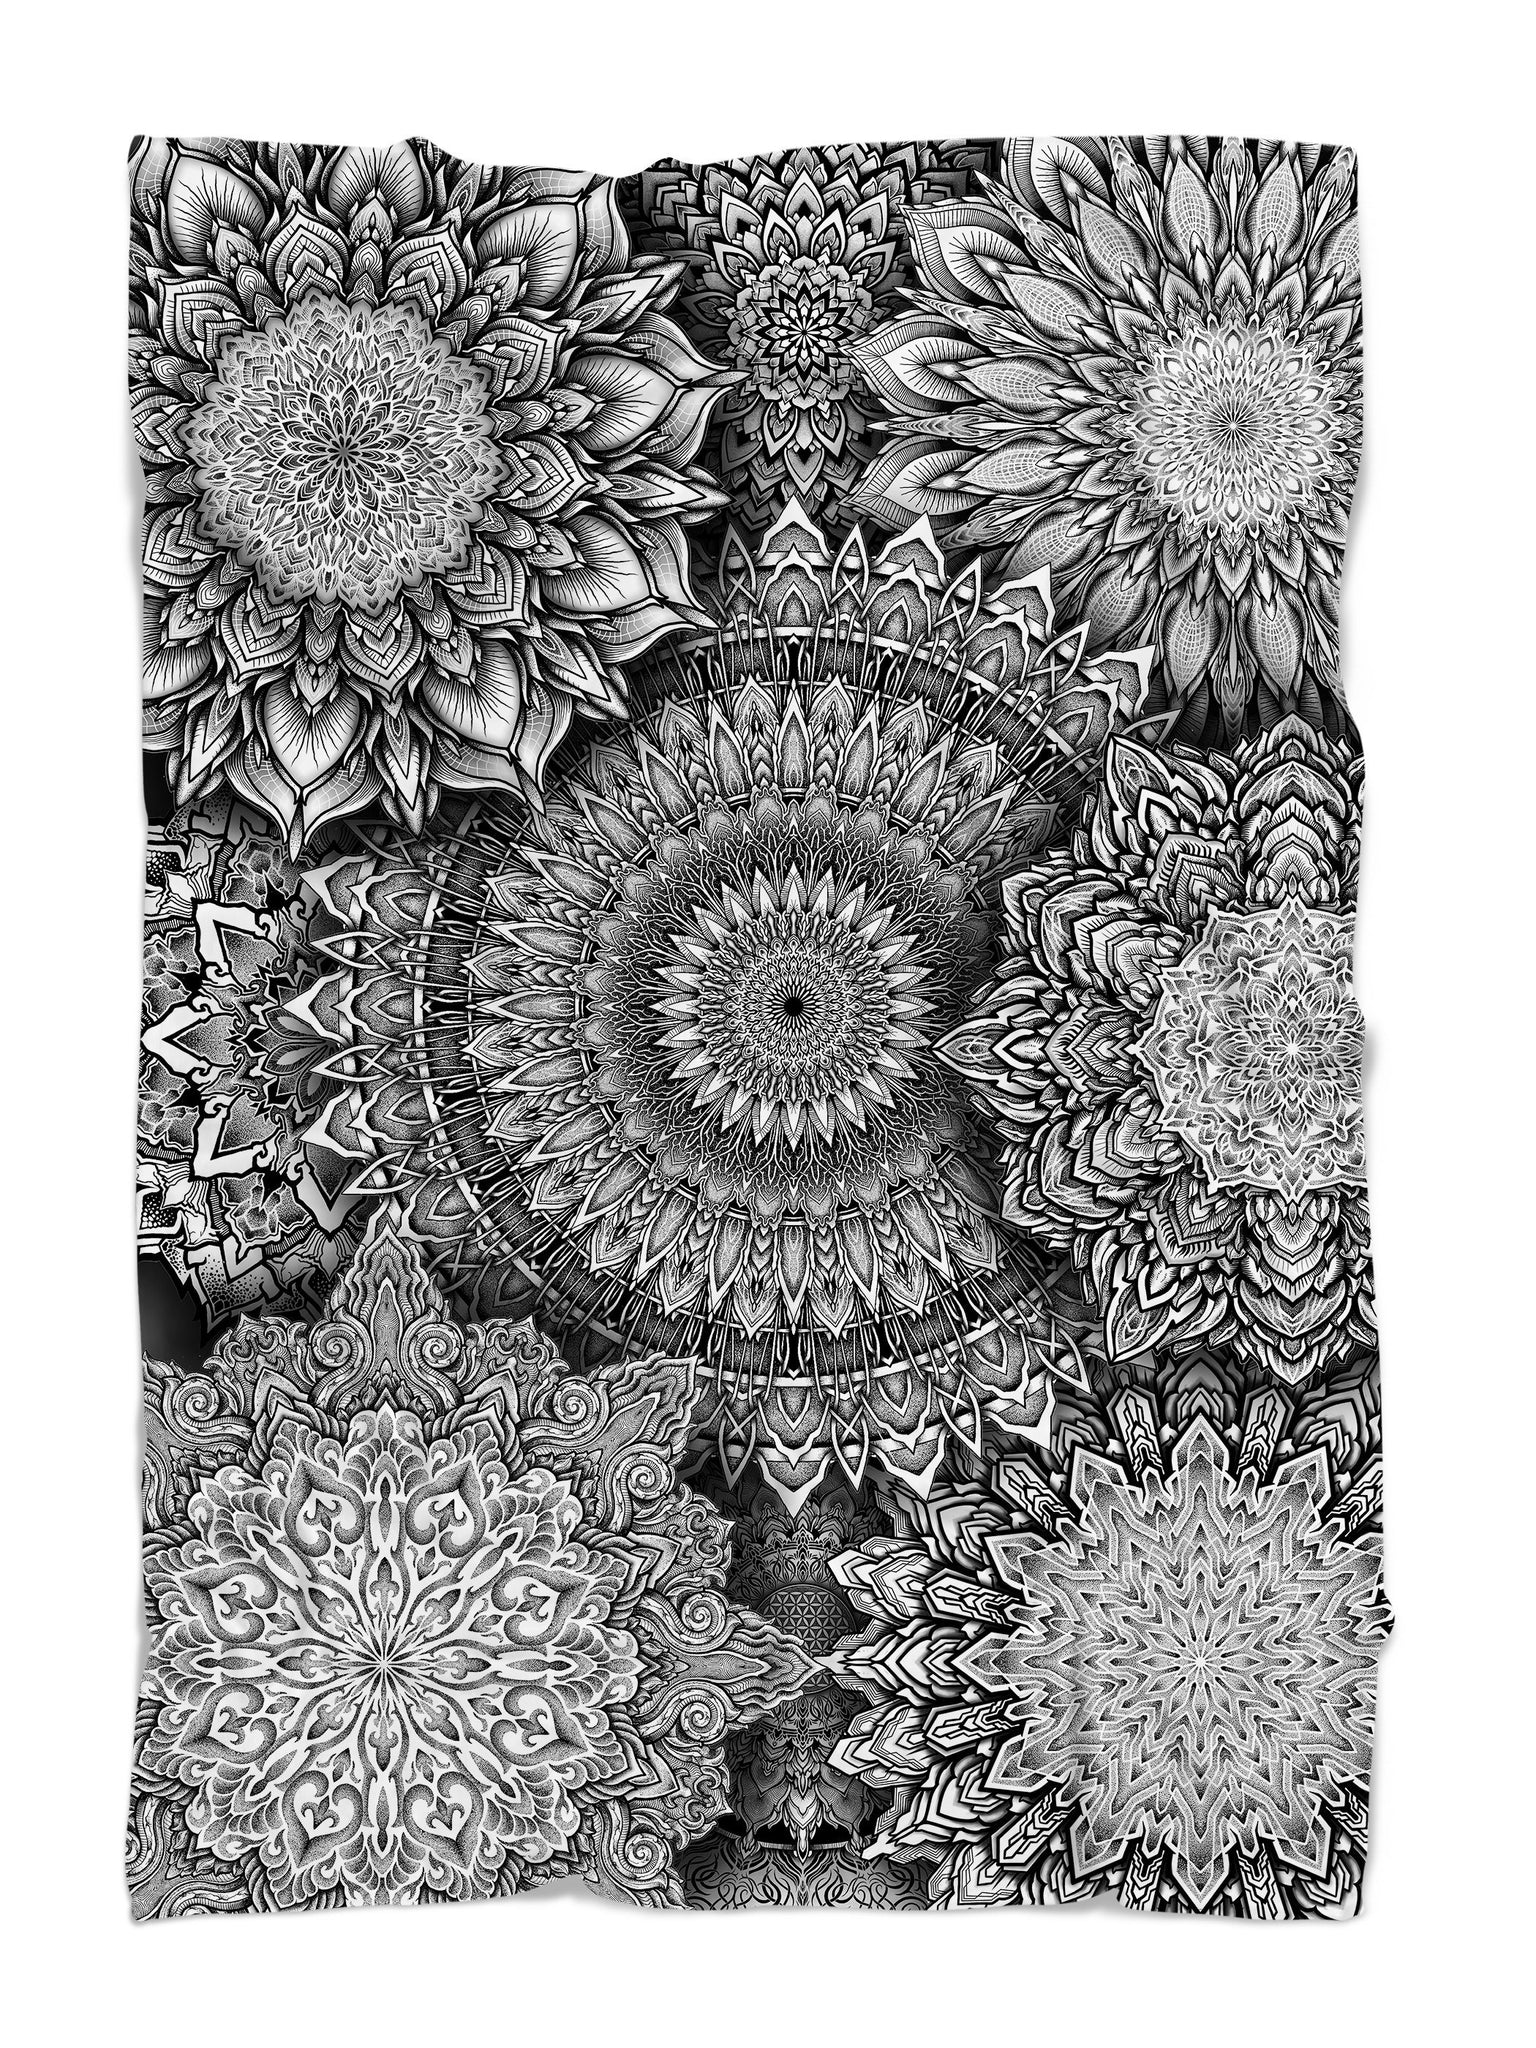 Mandala Bloom V2 Blanket Blanket Electro Threads